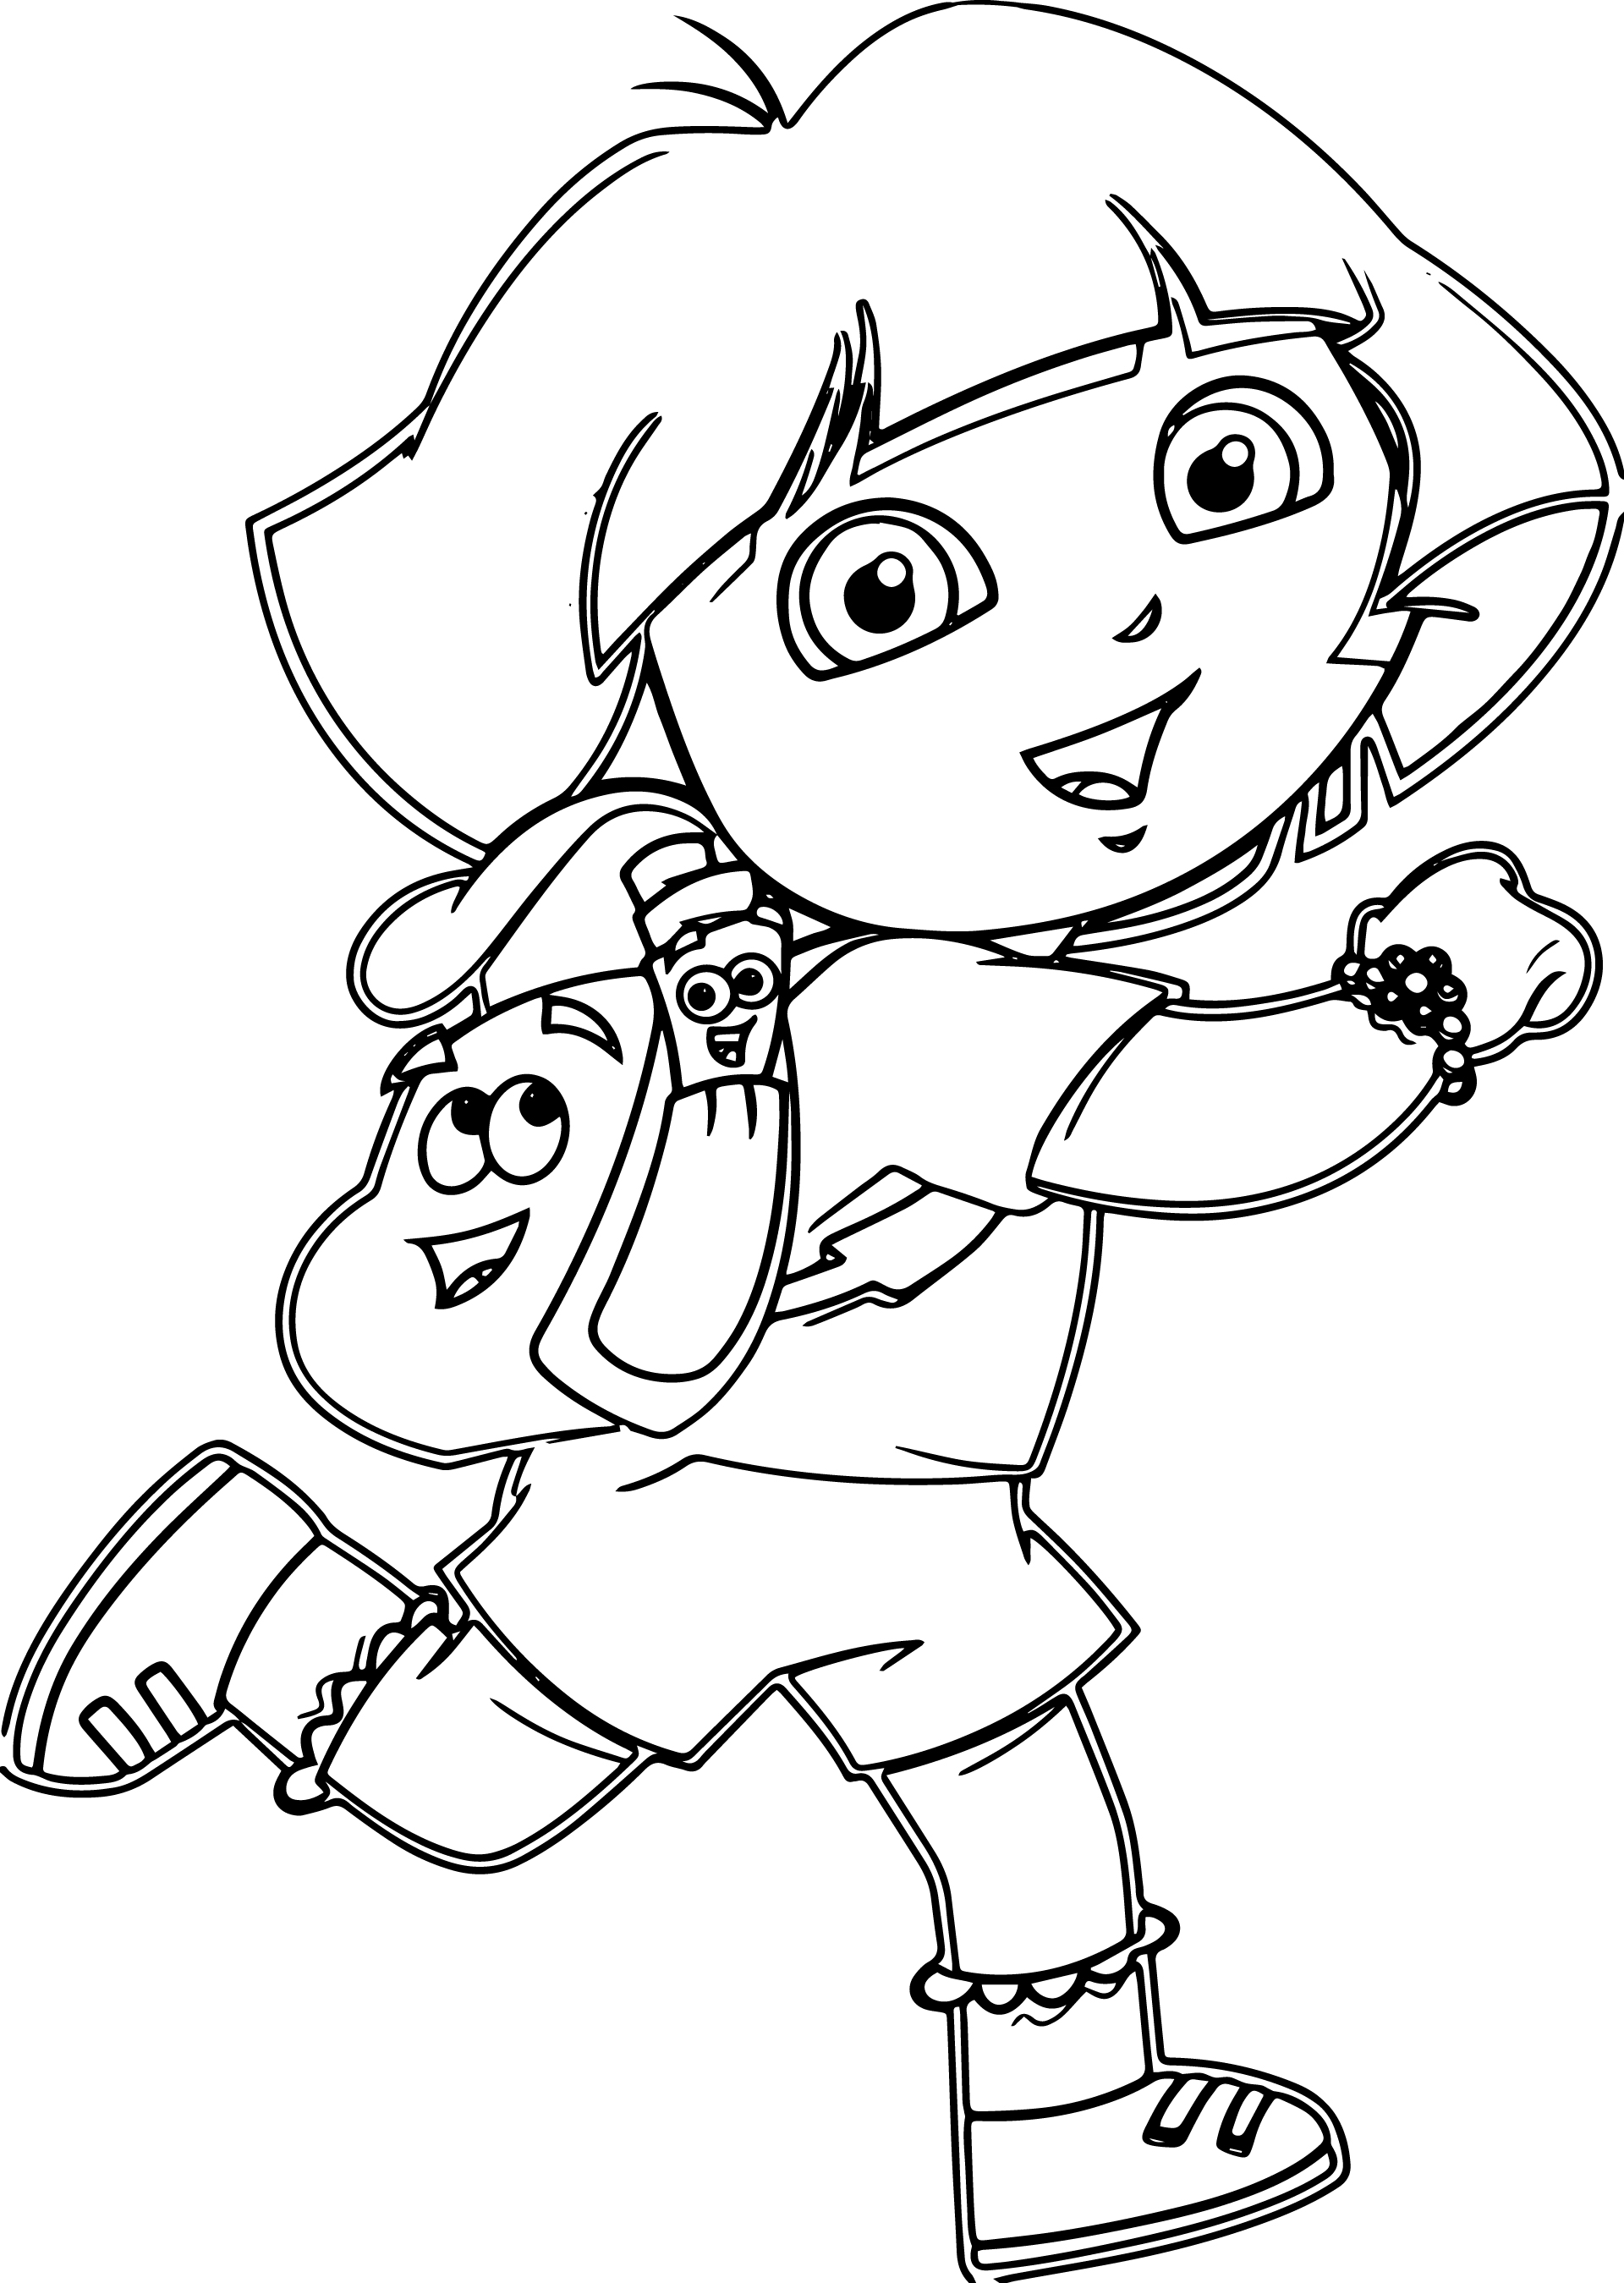 Dora Drawing Pictures_ at GetDrawings.com | Free for personal use ...